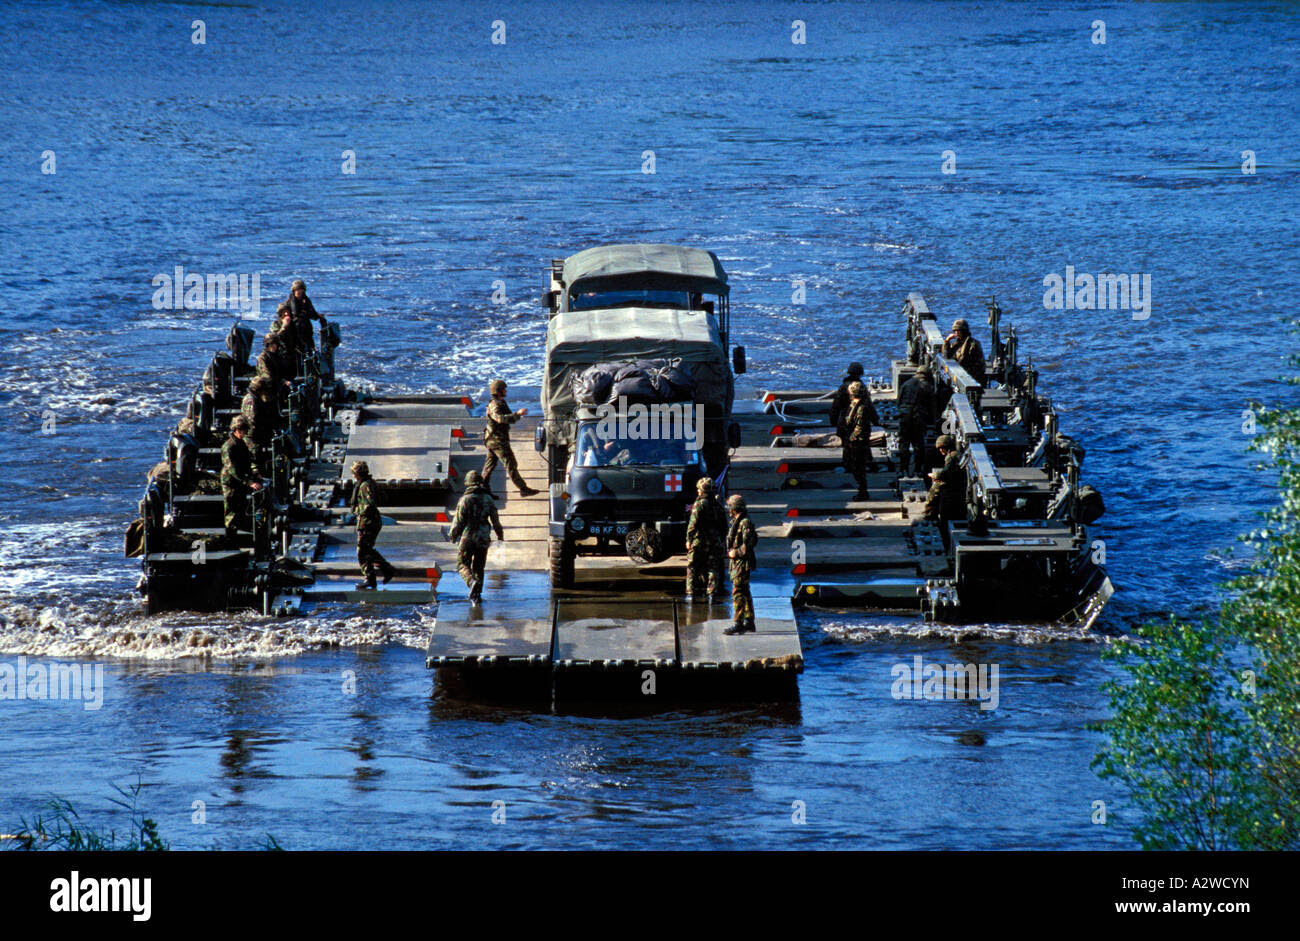 http://c8.alamy.com/comp/A2WCYN/british-army-m3-amphibious-rig-crossing-water-obstacle-during-exercise-A2WCYN.jpg